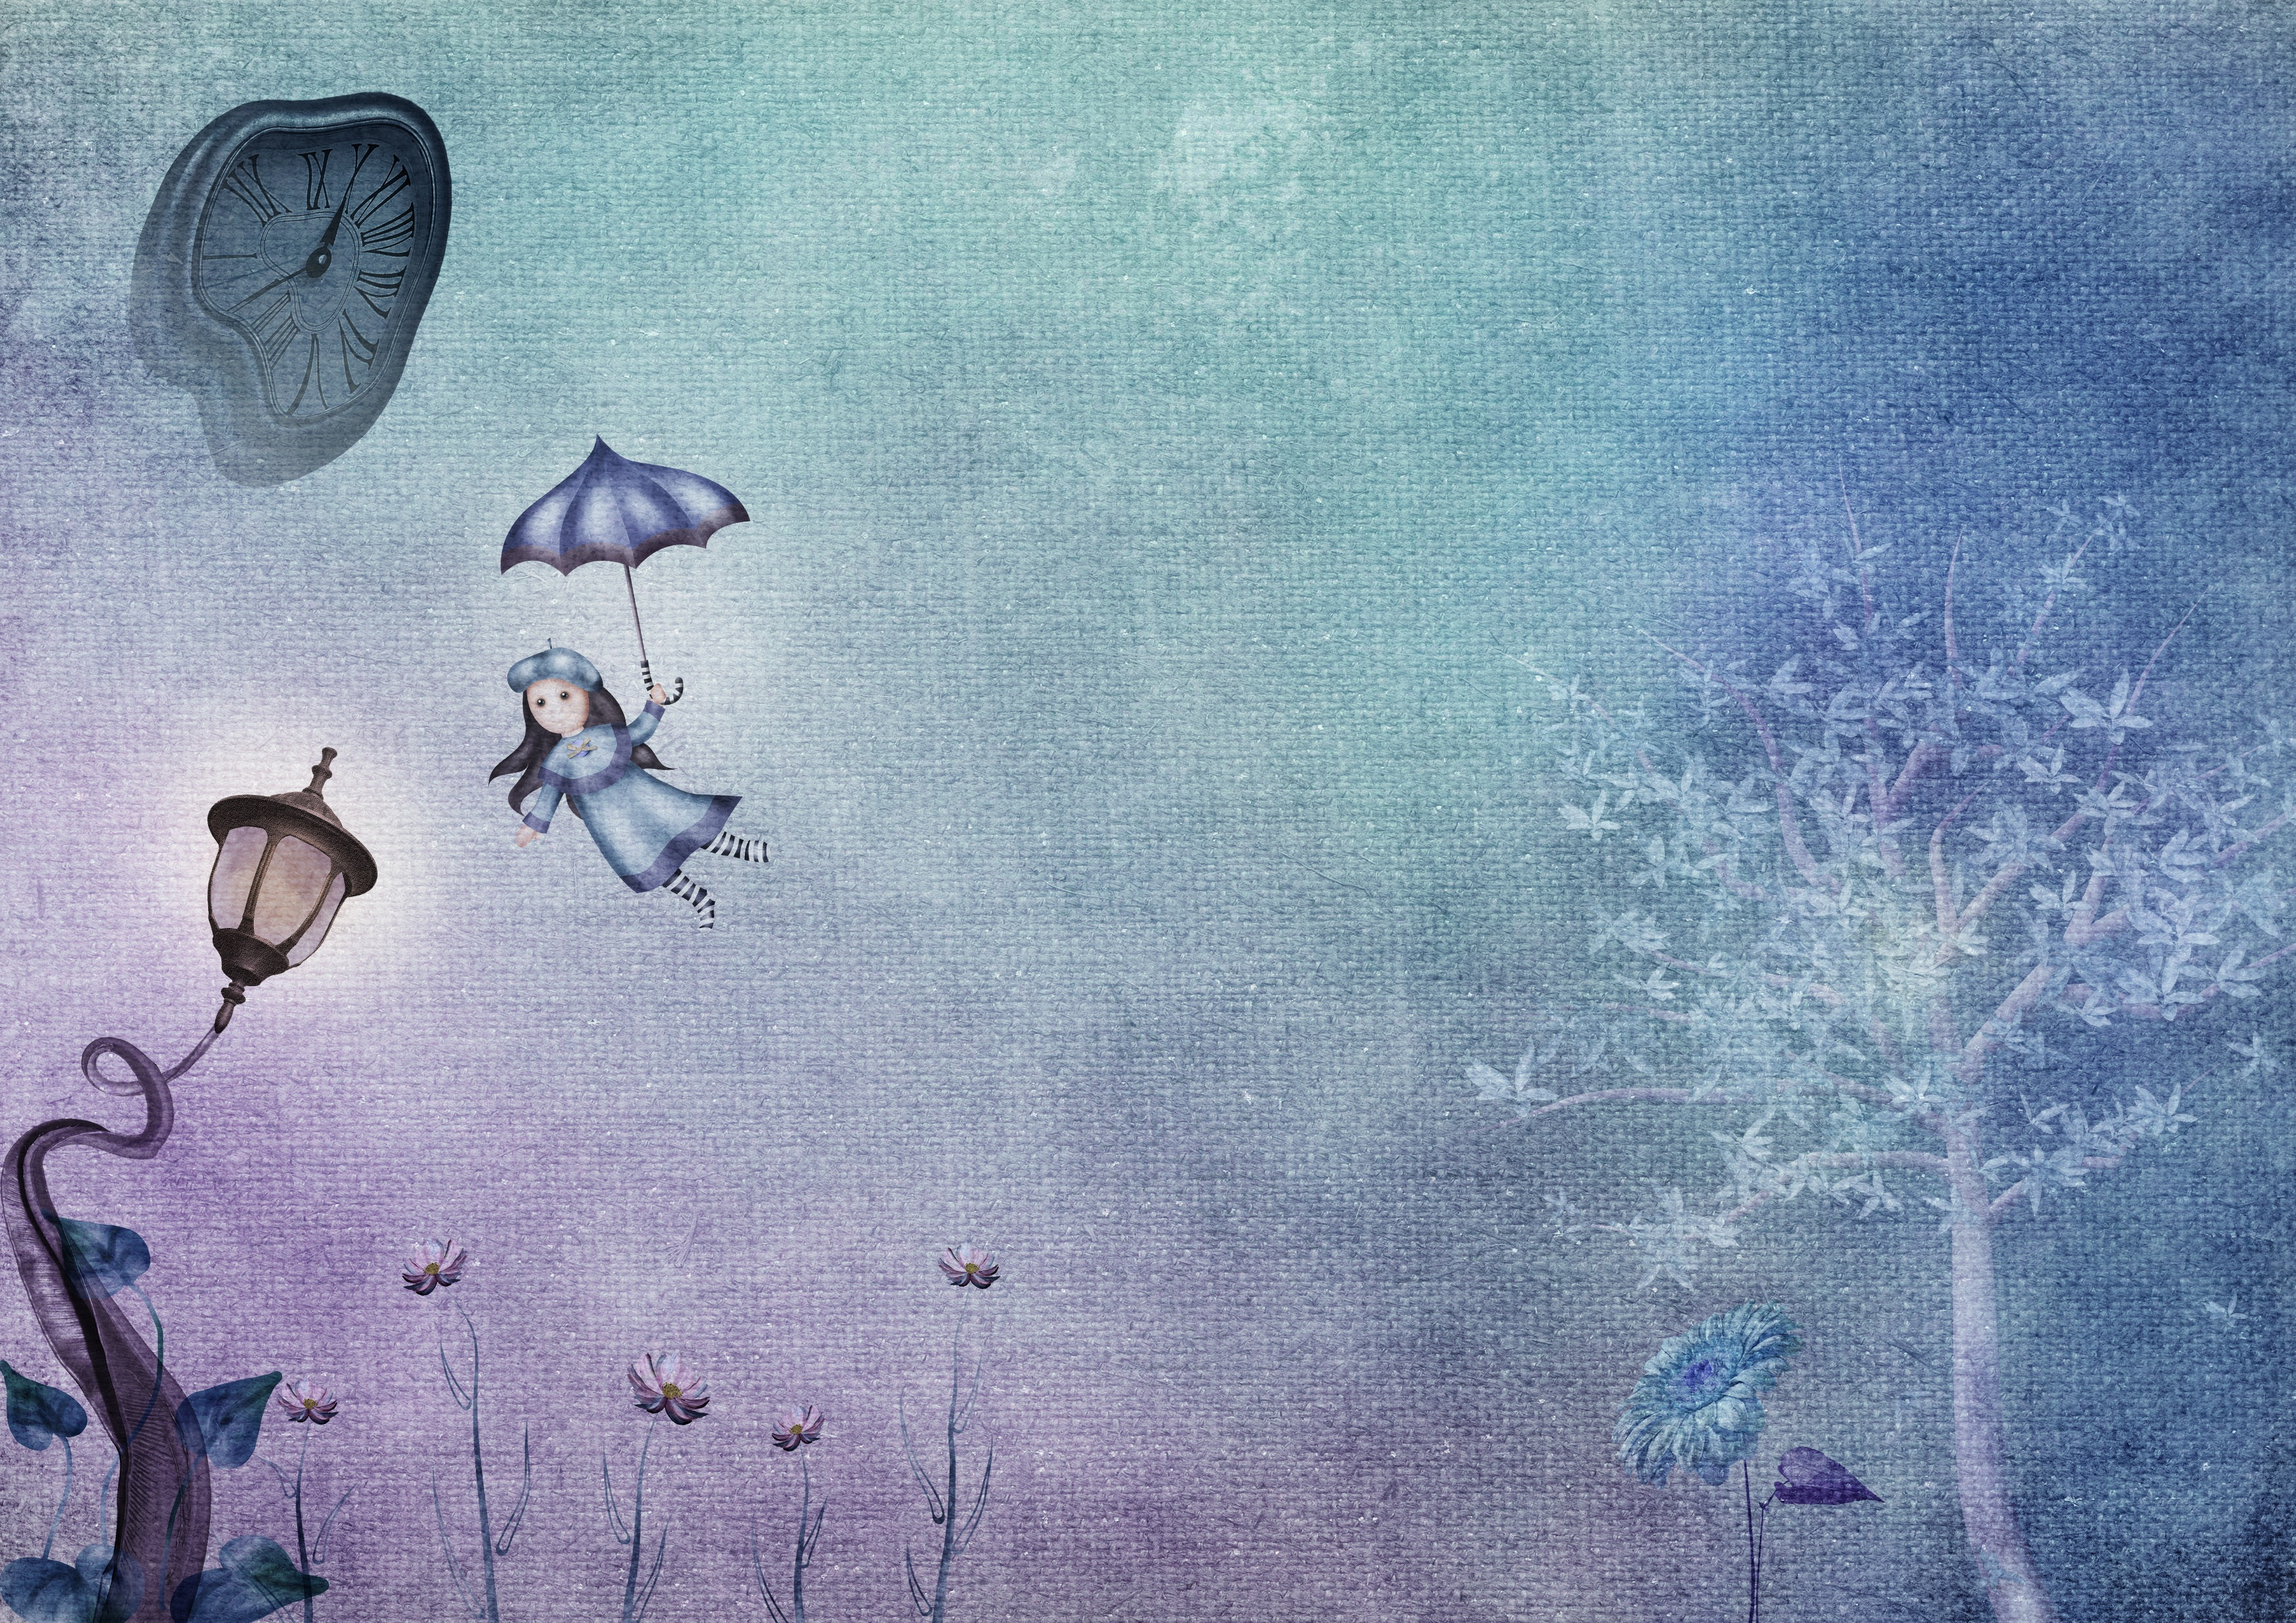 69230 download wallpaper Child, Flight, Fantasy, Art, Lamp, Lantern, Clock screensavers and pictures for free